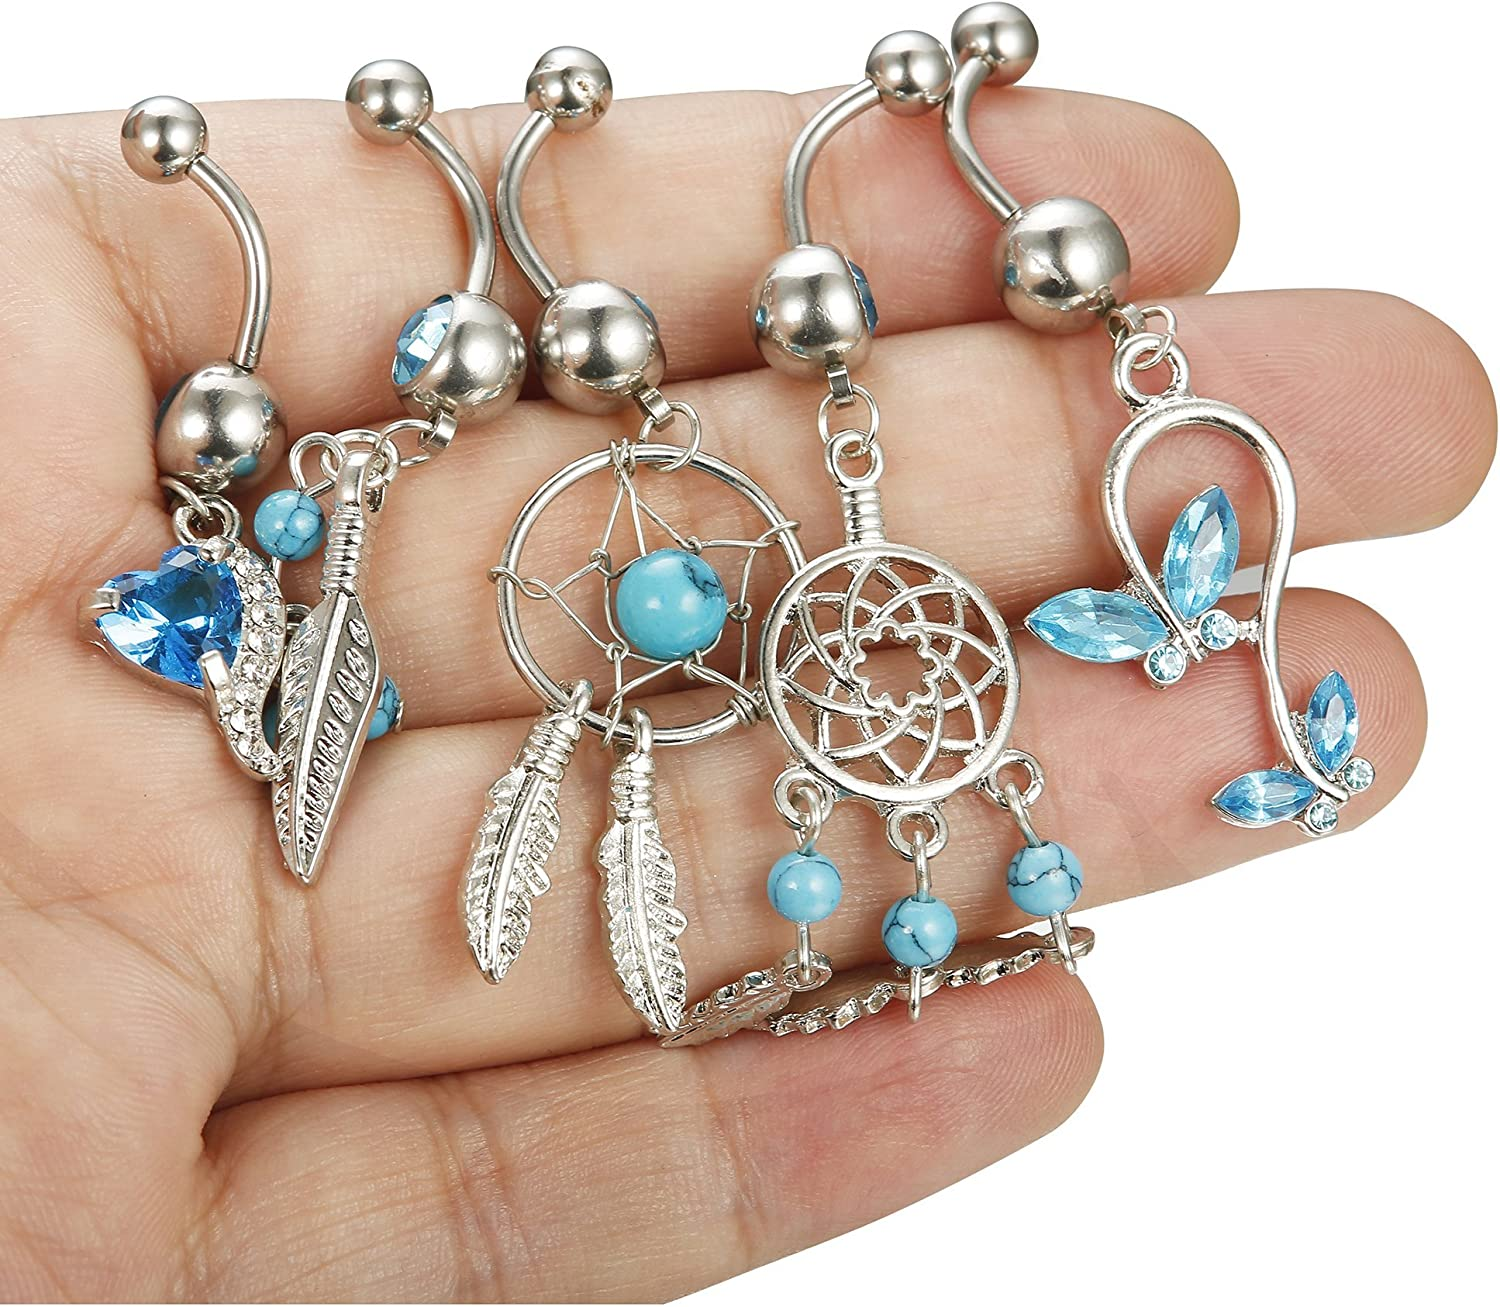 Fiasaso 925 Sterling Silver Belly Button Rings for Women Vintage Flower Navel Rings Belly Piercing